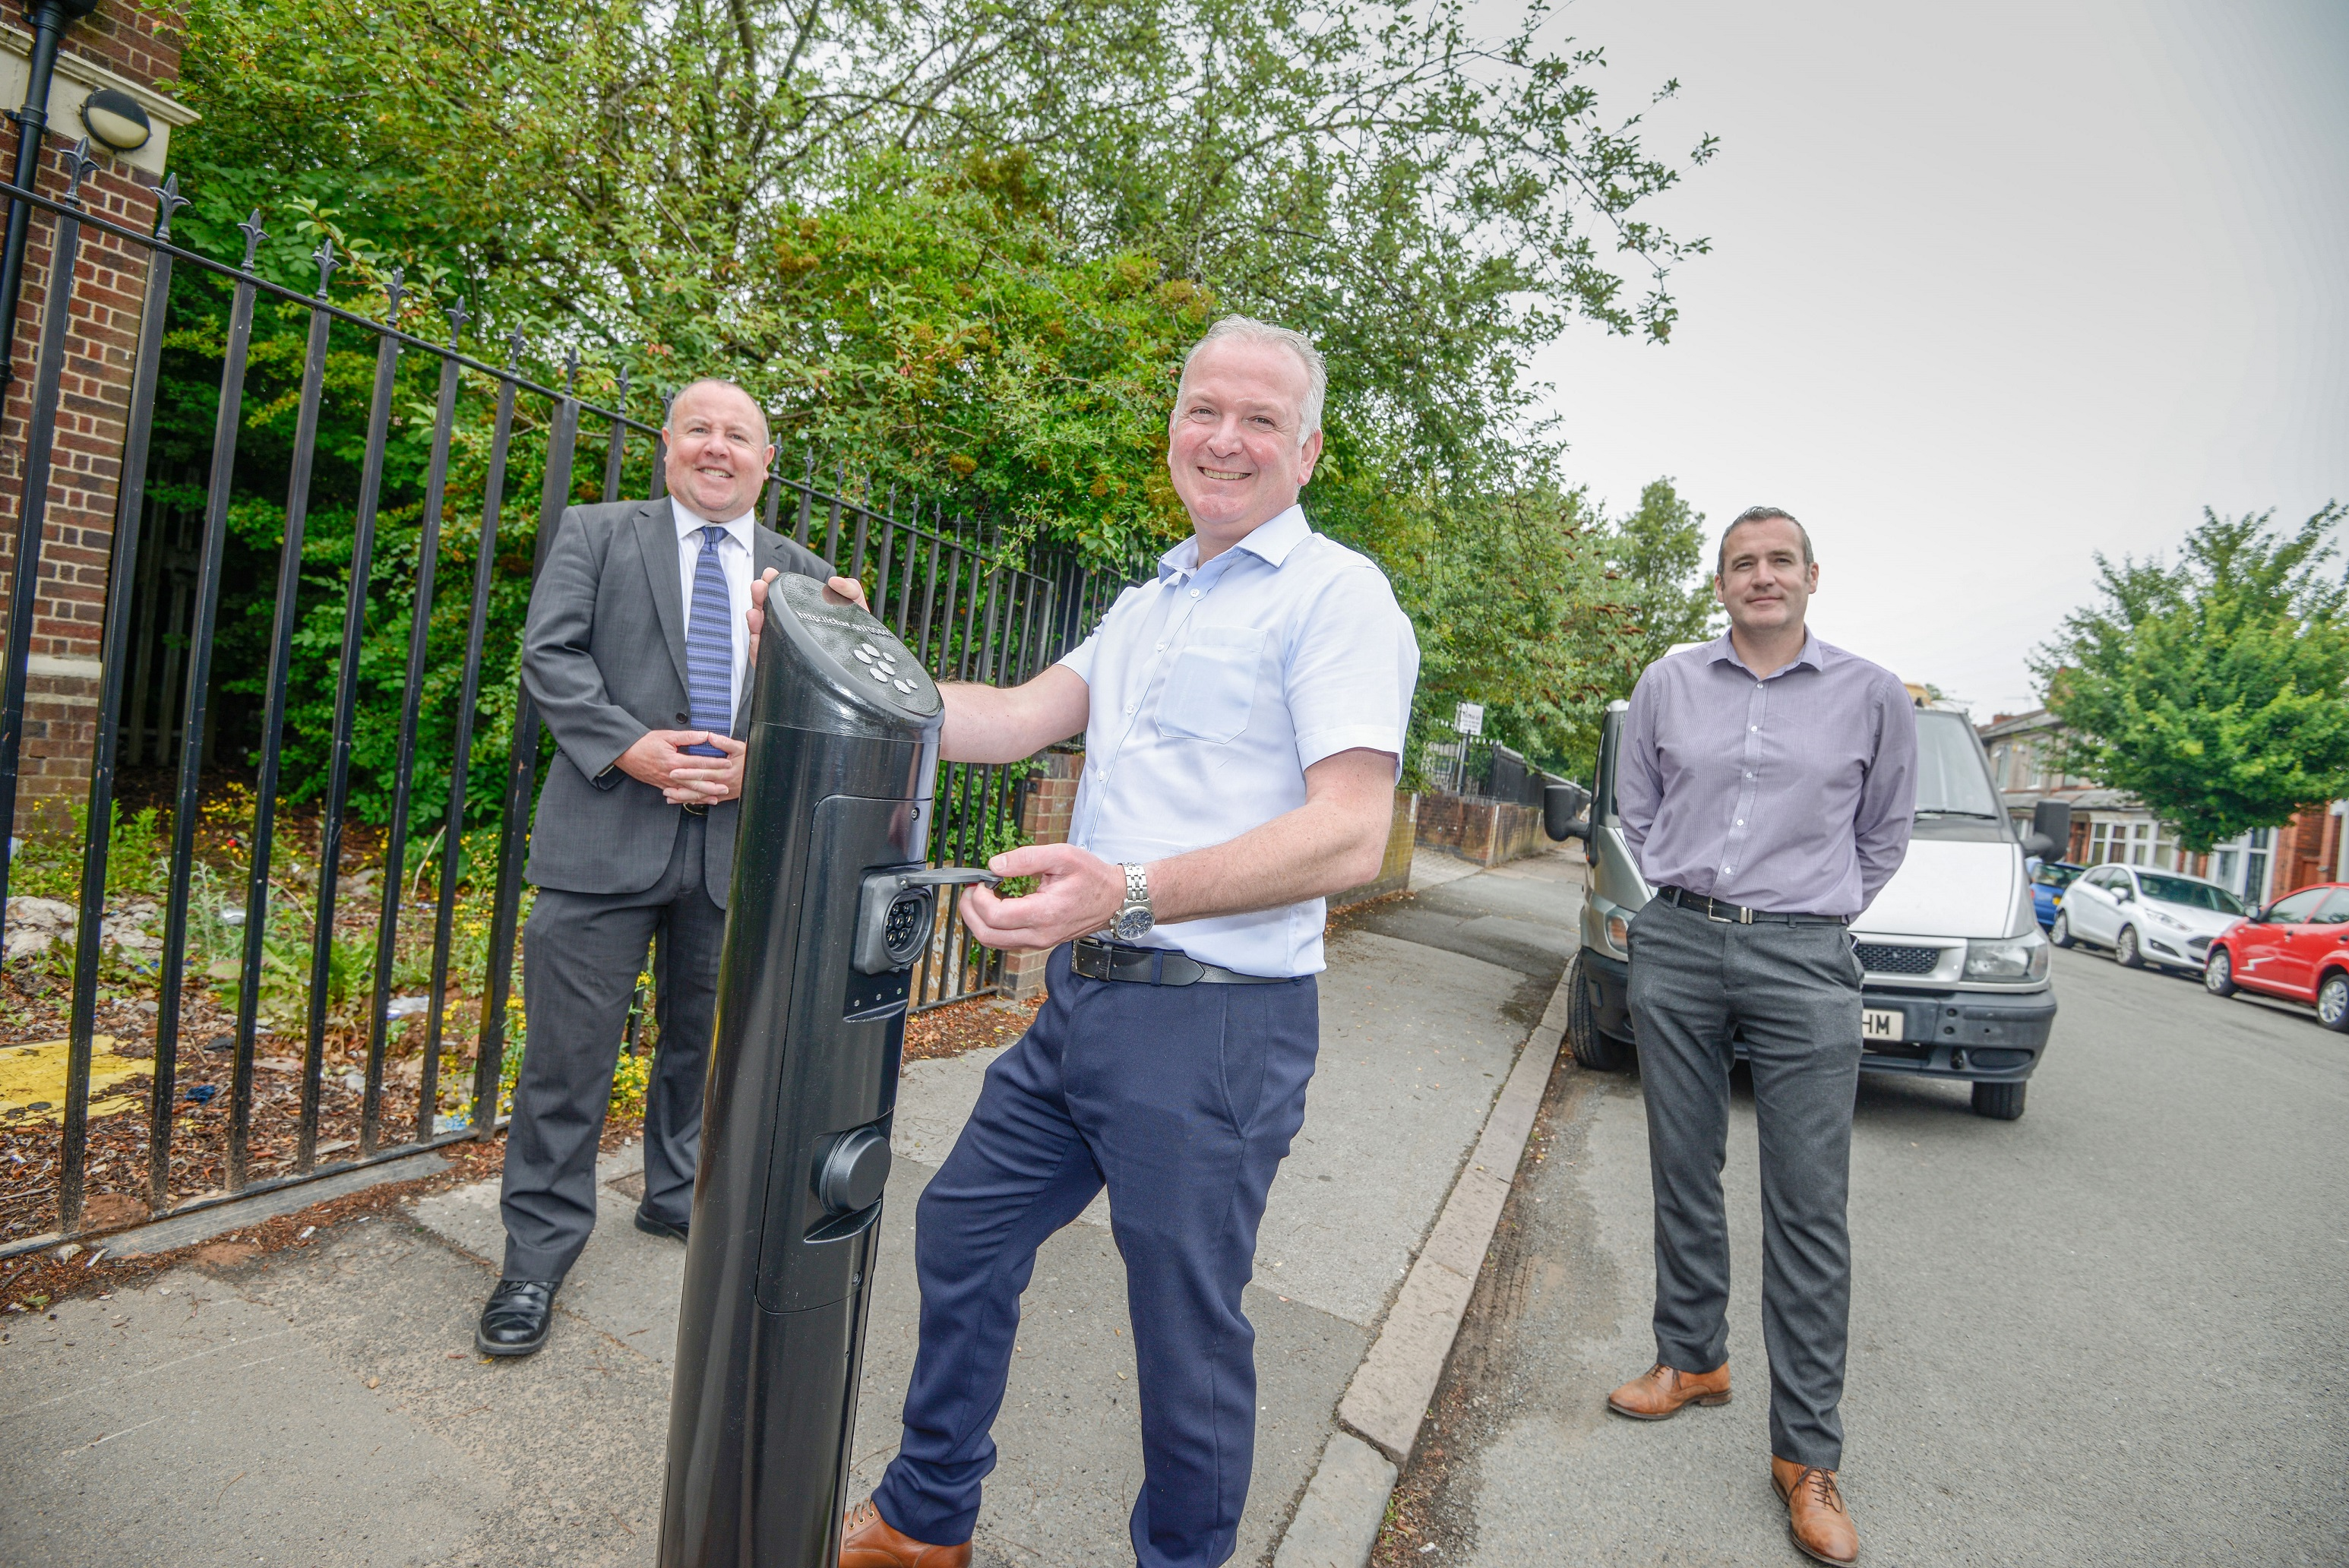 Charging points made by Sarginsons installed across Coventry